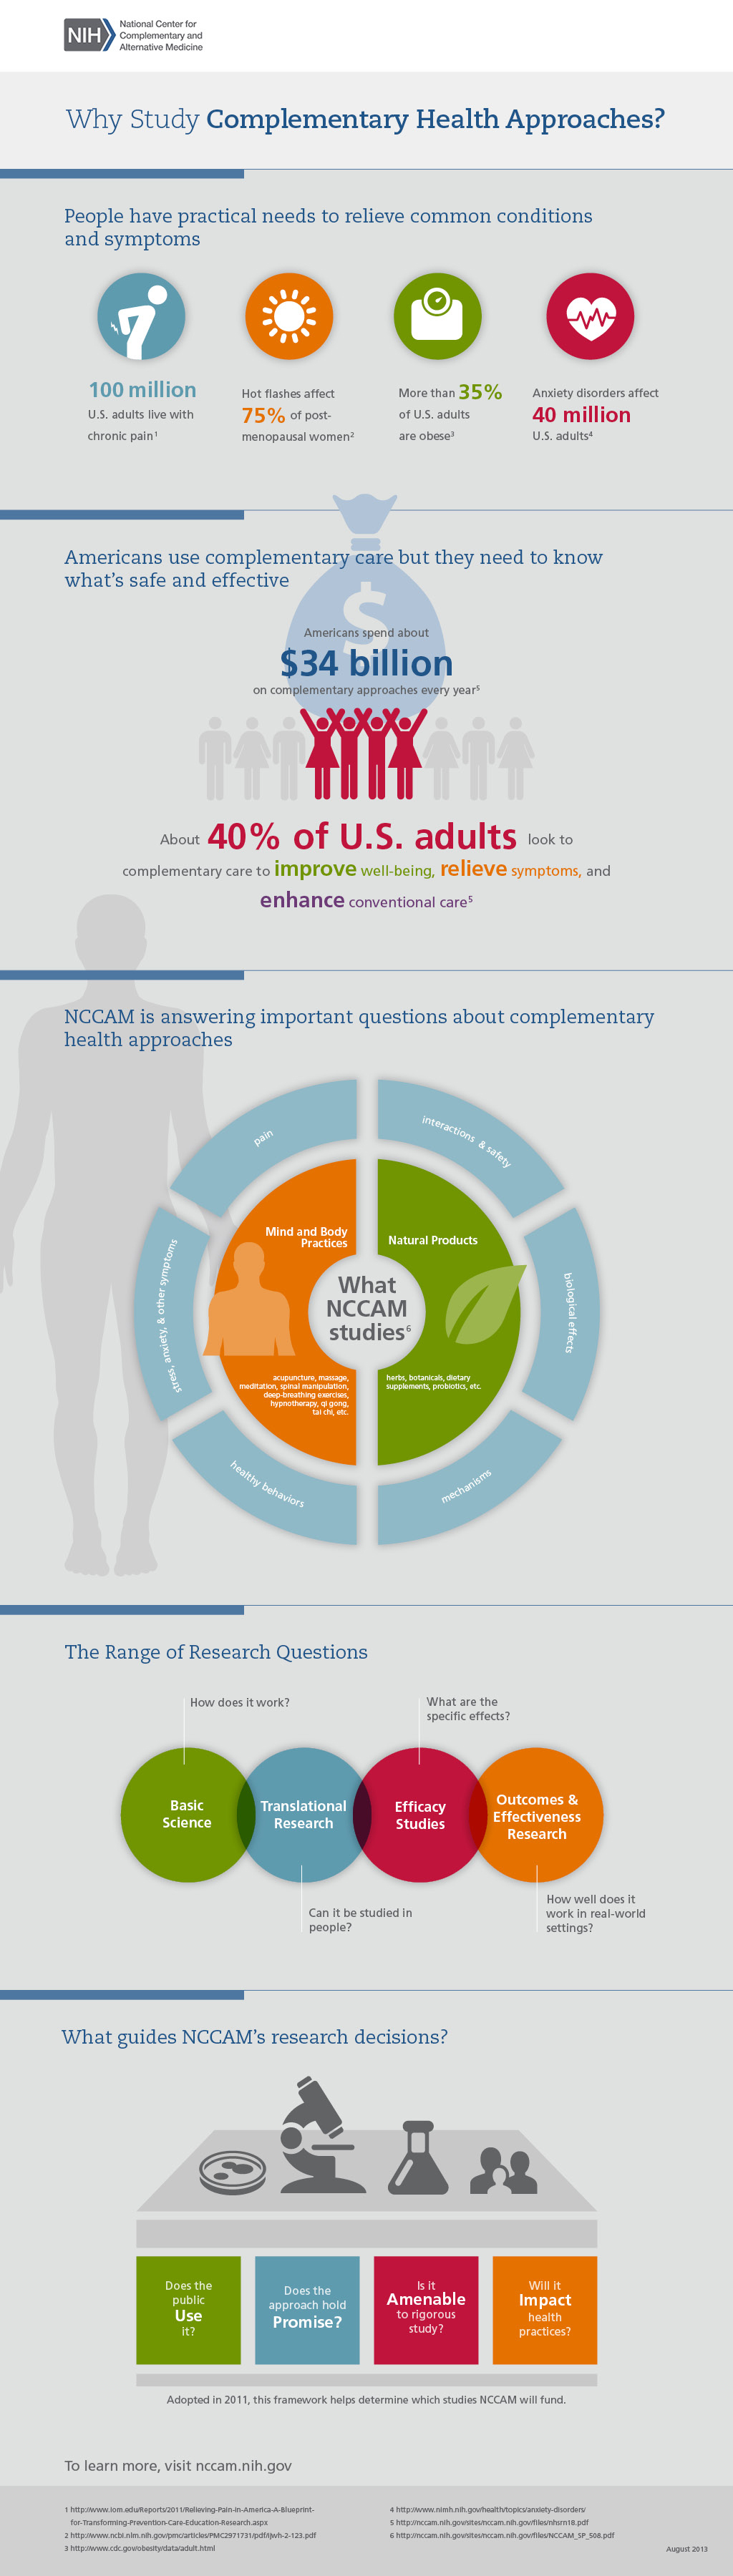 This graphic shows Why NCCAM studies Complementary Health Practices.  Follow text version links provided on each section link below for full description.